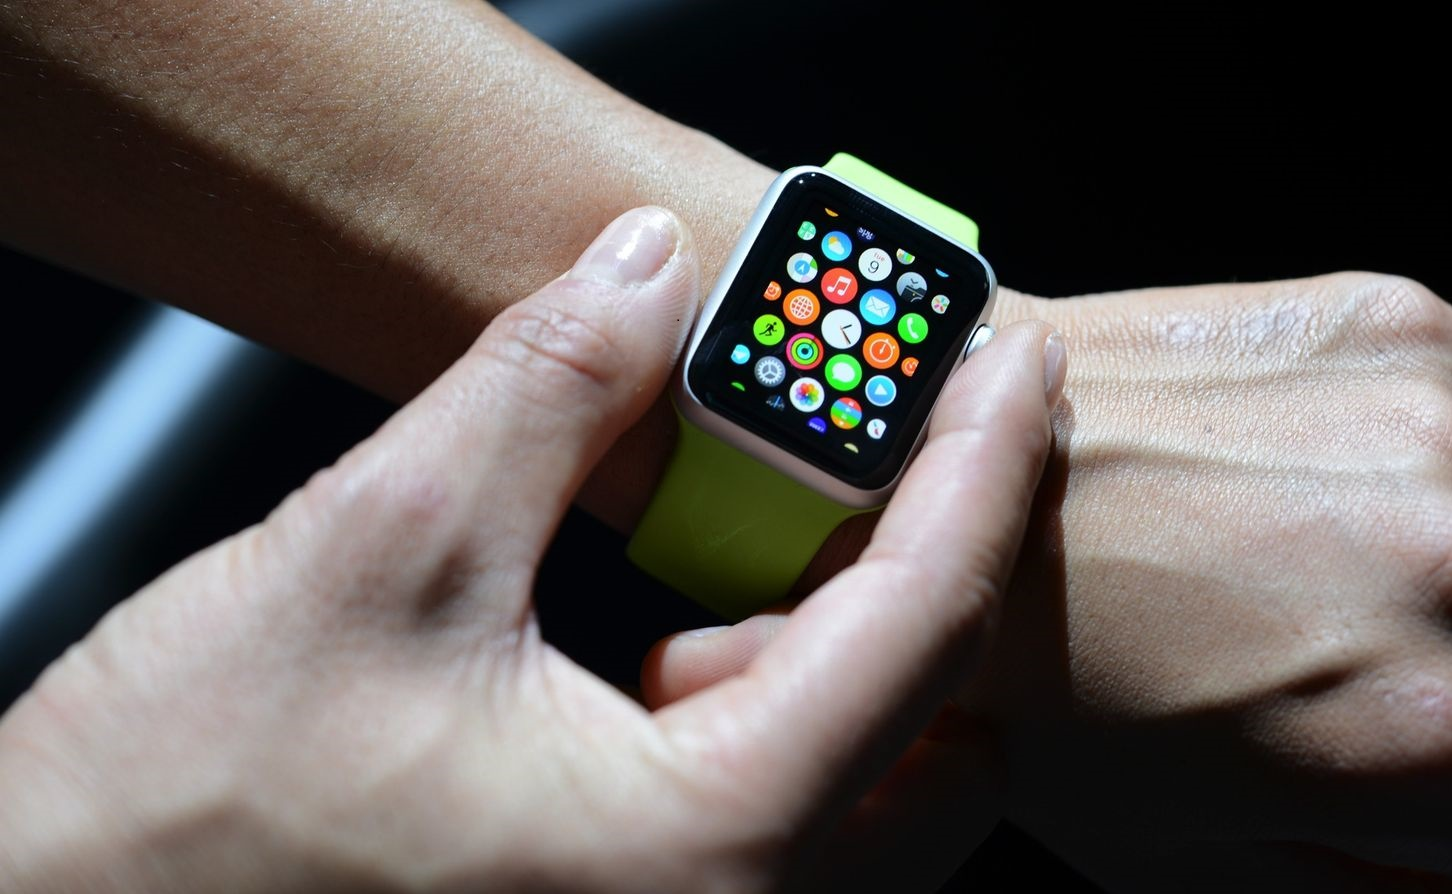 Apple Watch will be available from June via retail stores